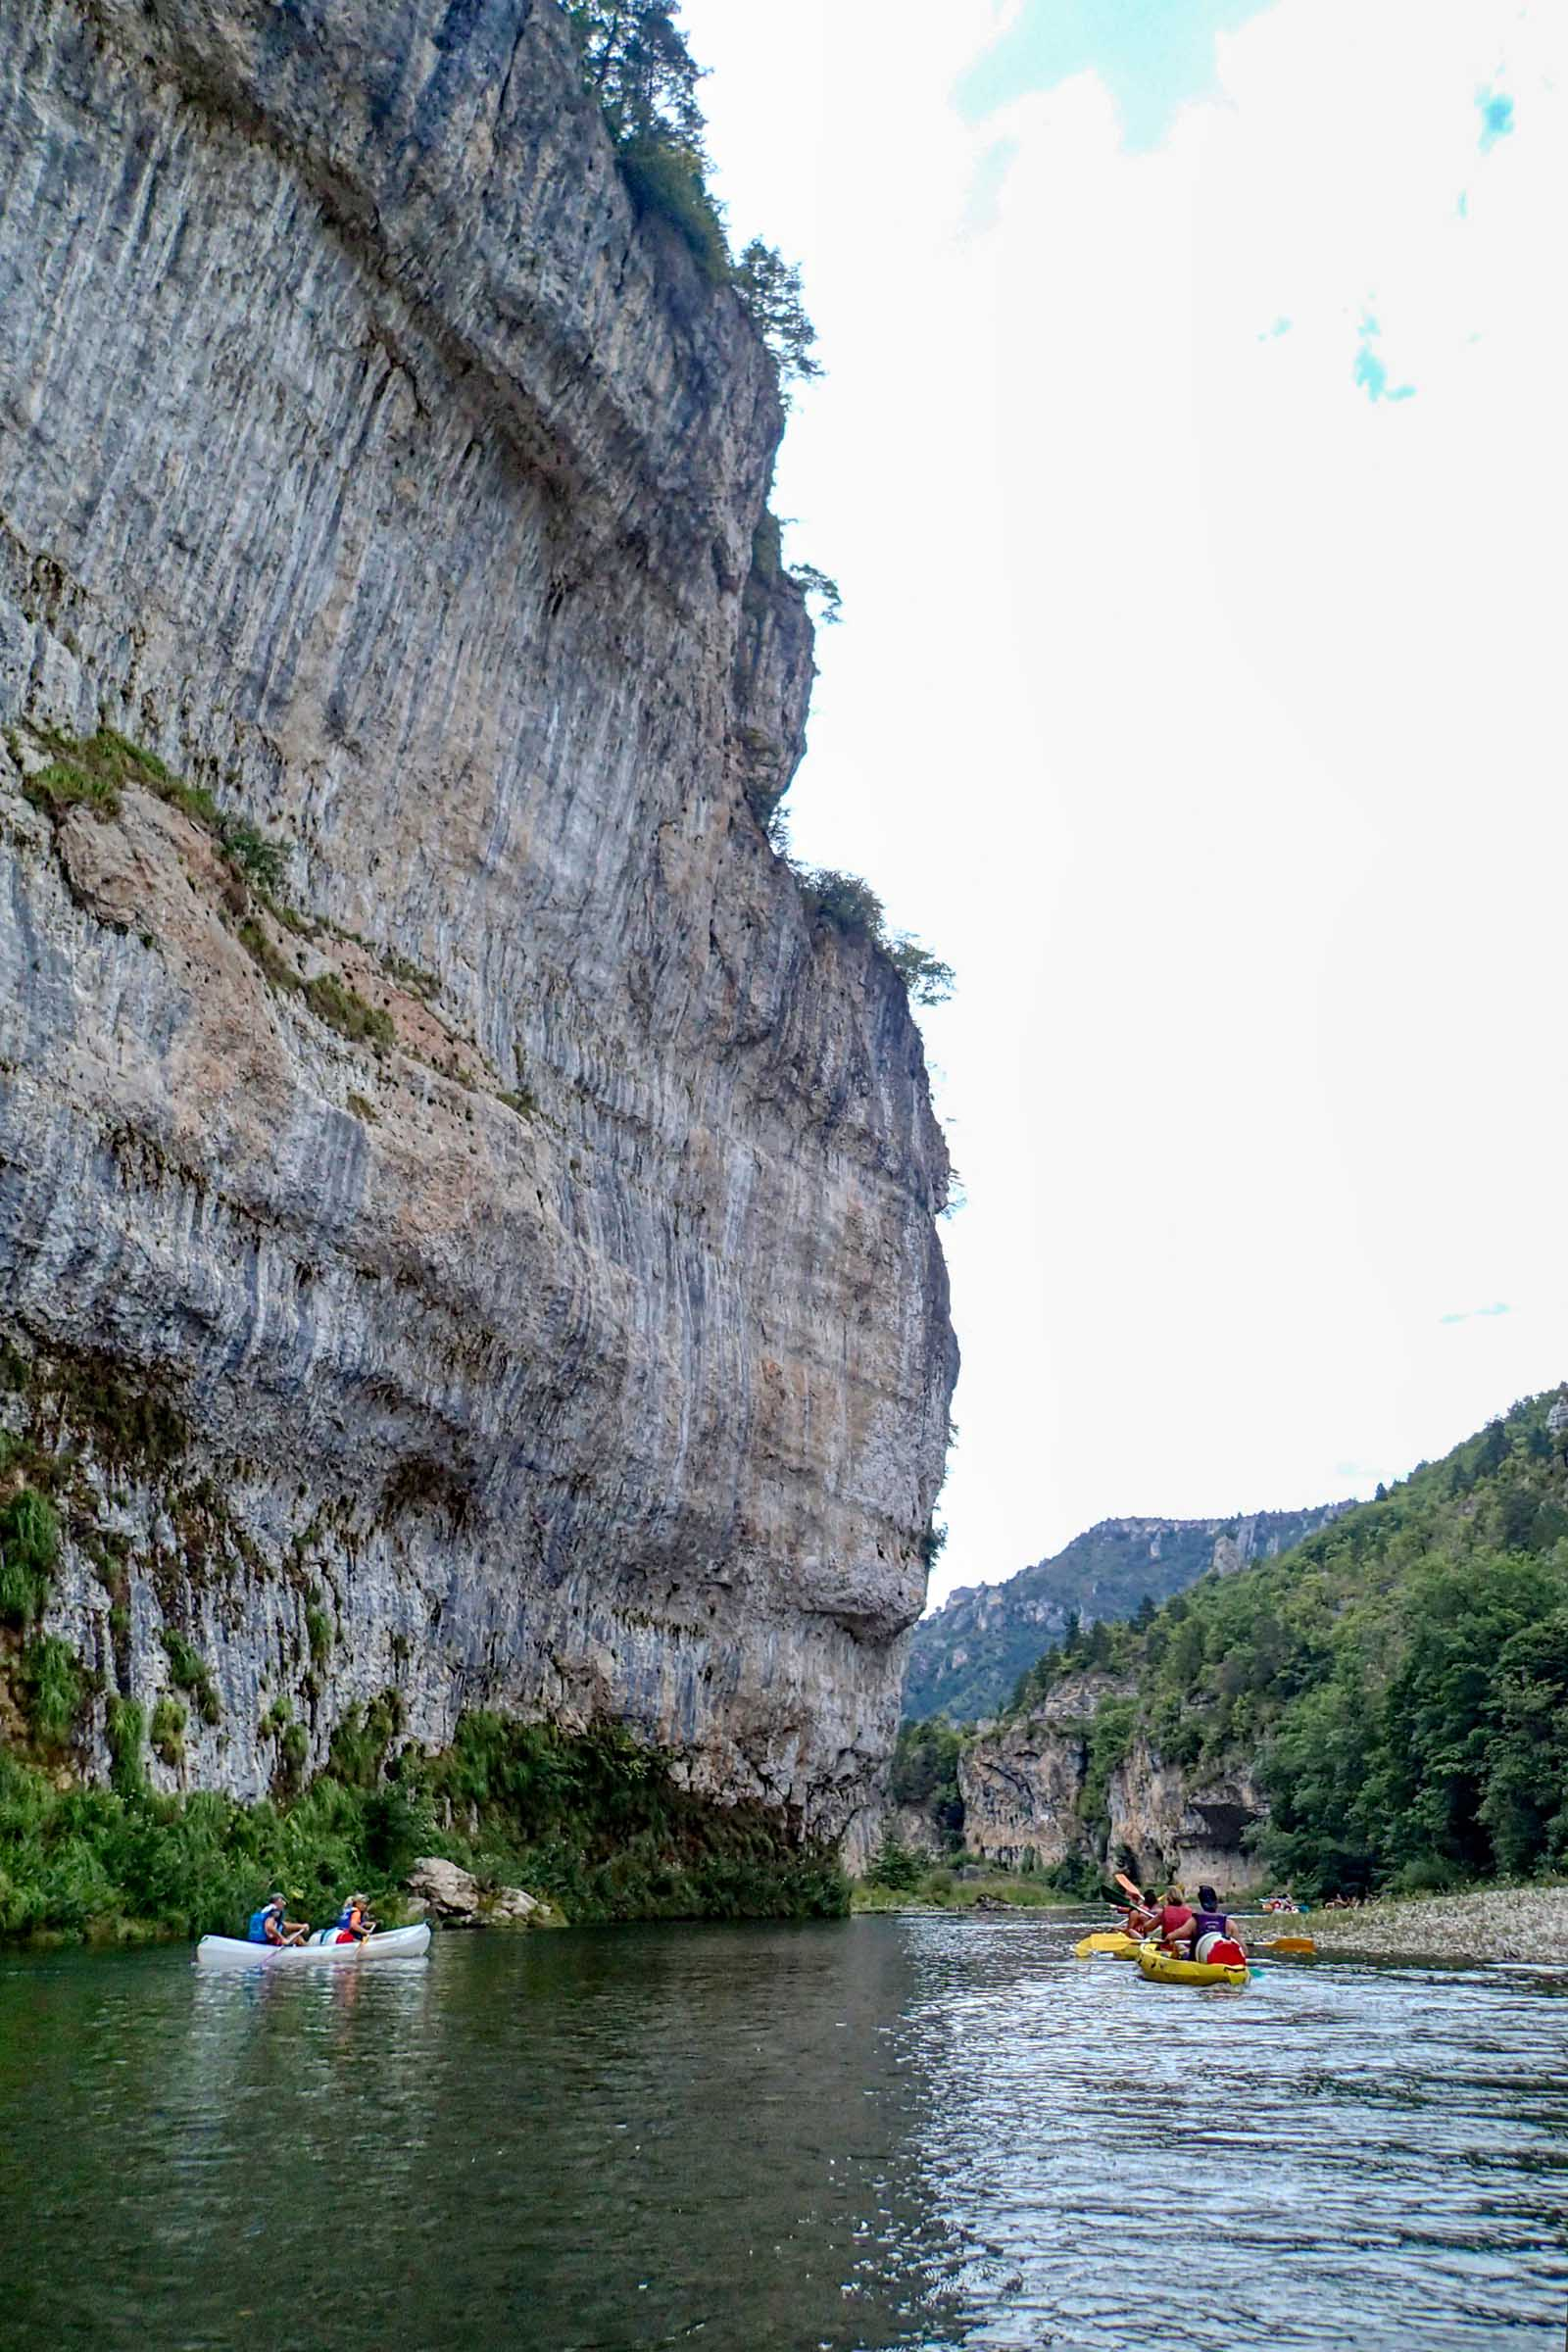 Canoeing in the Gorges du Tarn